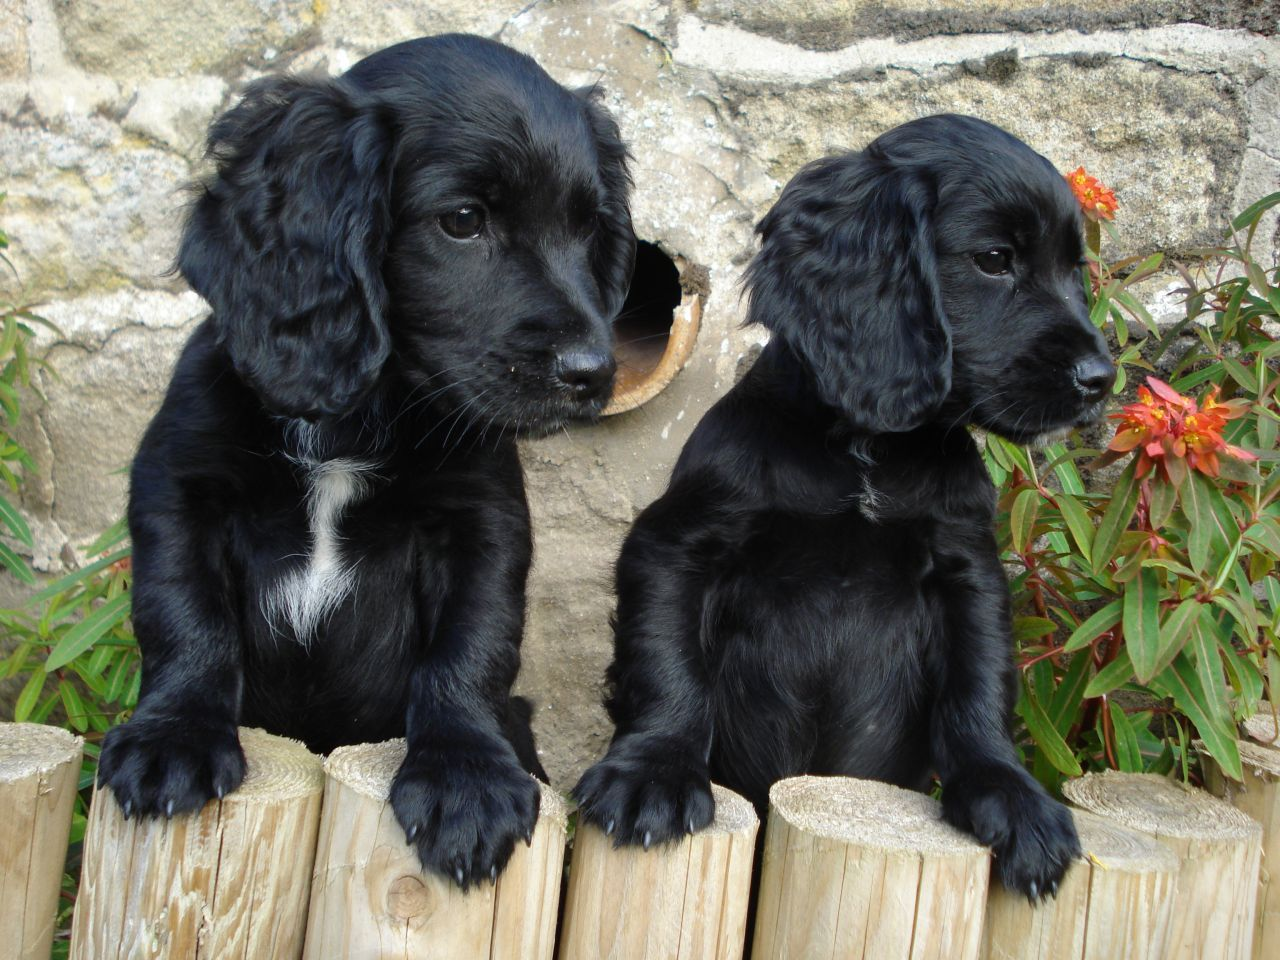 Working Cocker Pups For Sale Harrogate North Yorkshire Pets4homes Black Cocker Spaniel Puppies Working Cocker Dogs